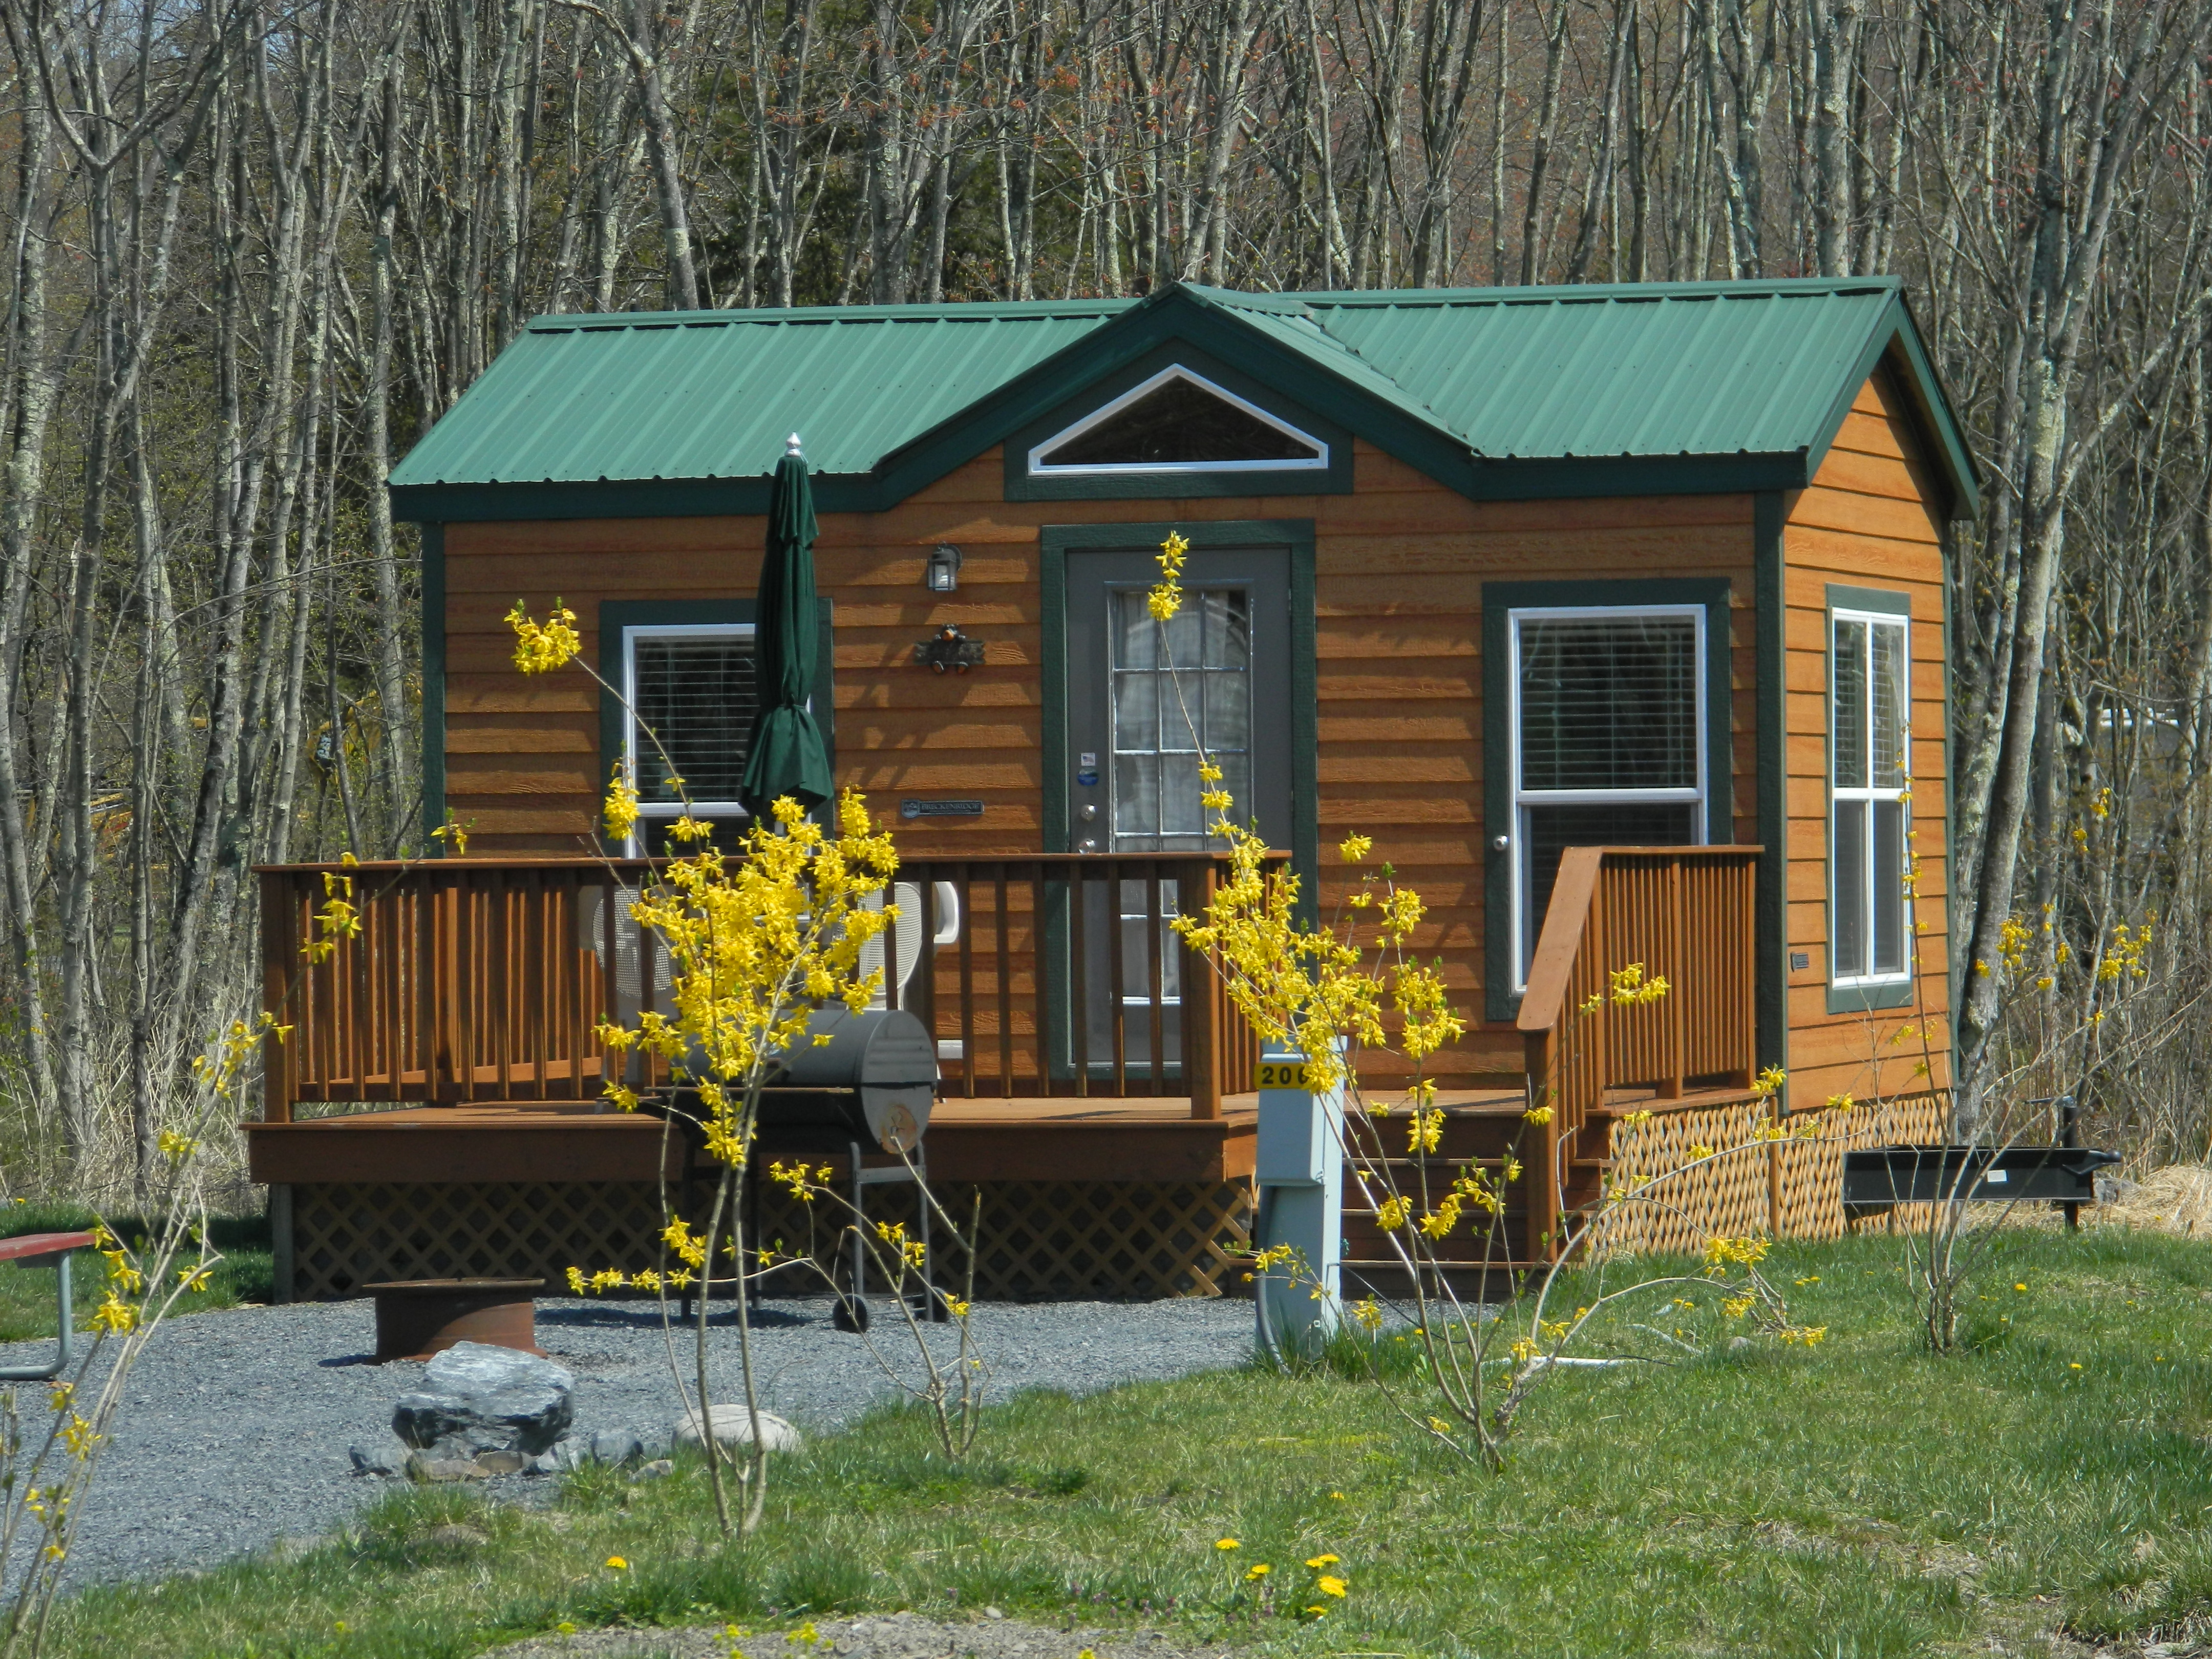 cozy rentals pines pin mountains houses winter cabins fall cabin pinecrest rental lake vacation pocono rustic more pa retreat